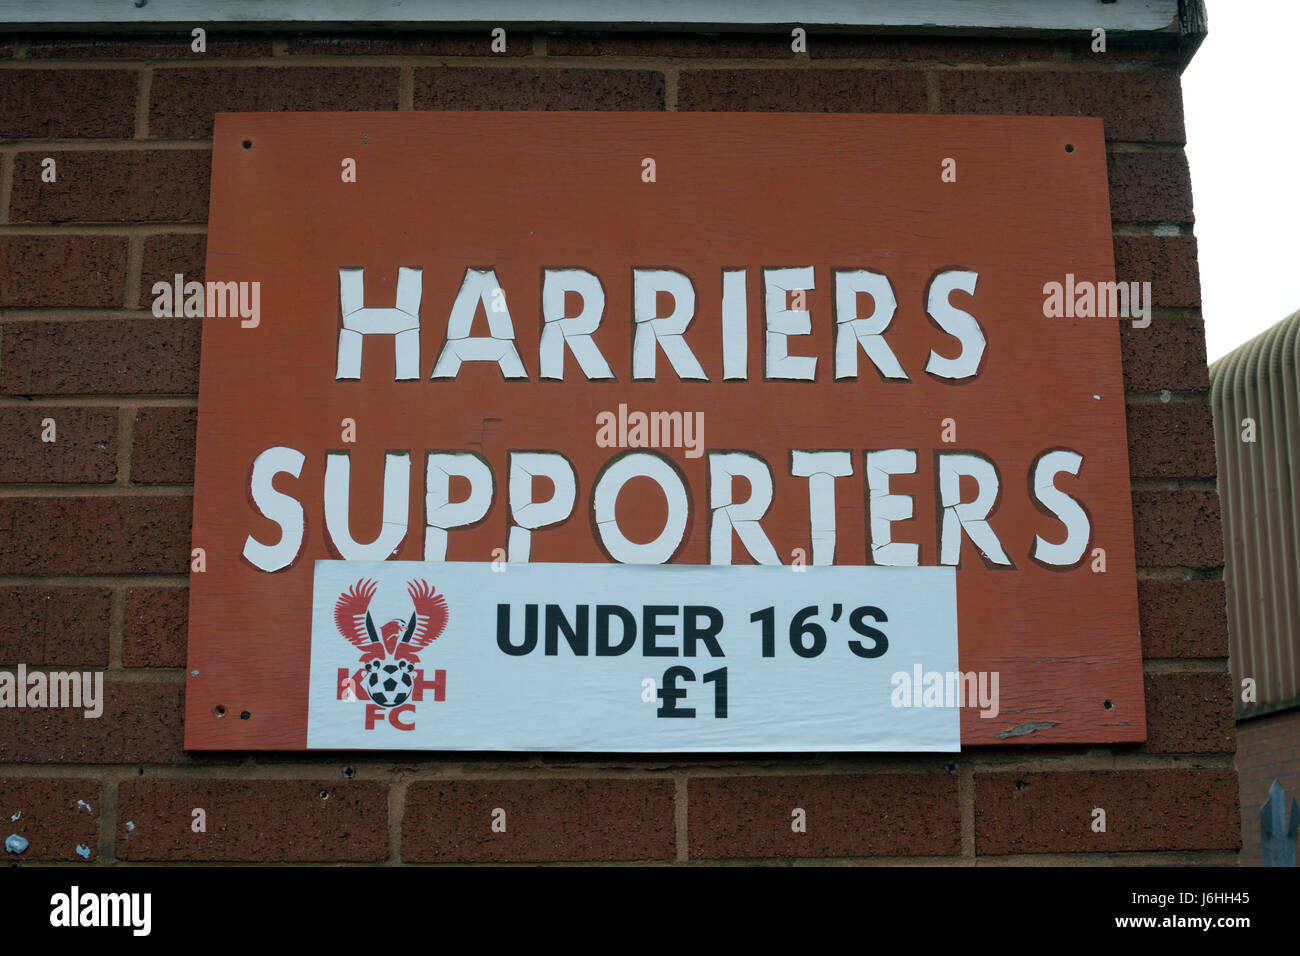 A sign at Kidderminster Harriers football ground, Worcestershire, England, UK Stock Photo